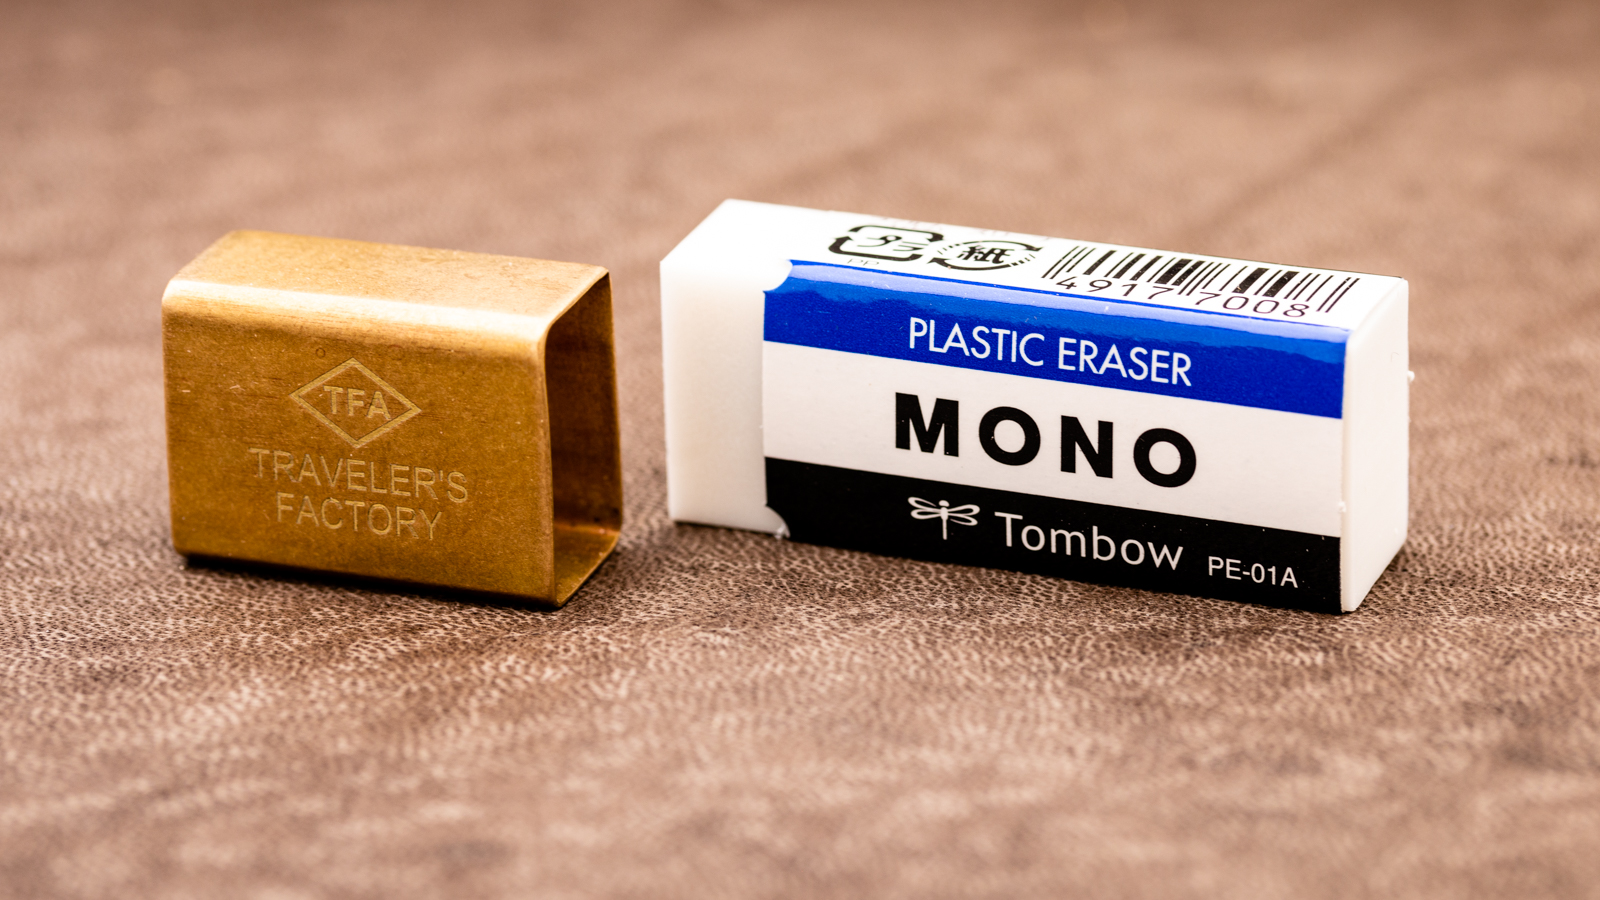 Traveler's Factory - Brass Eraser Holder